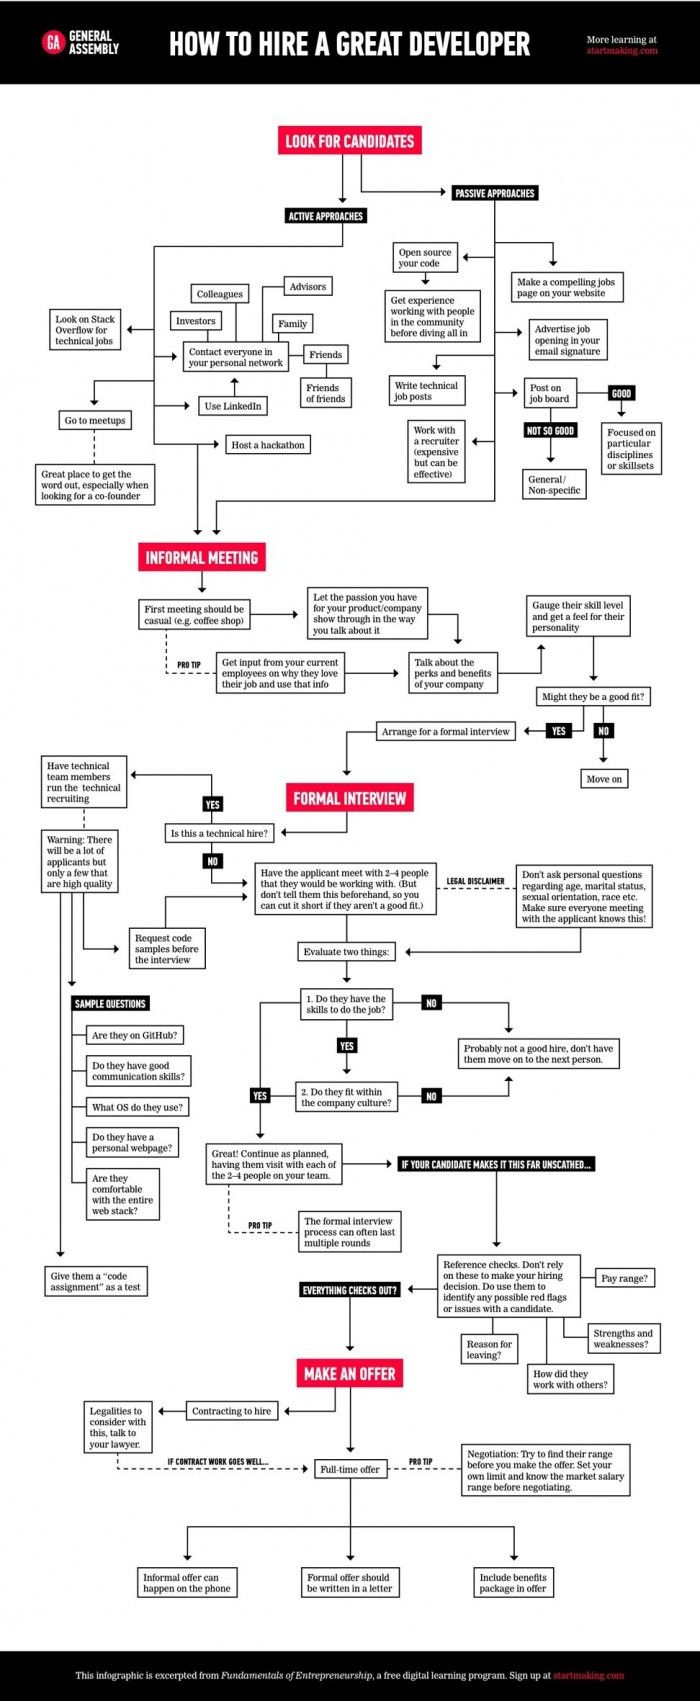 How To Hire a Great Developer [FLOW CHART]